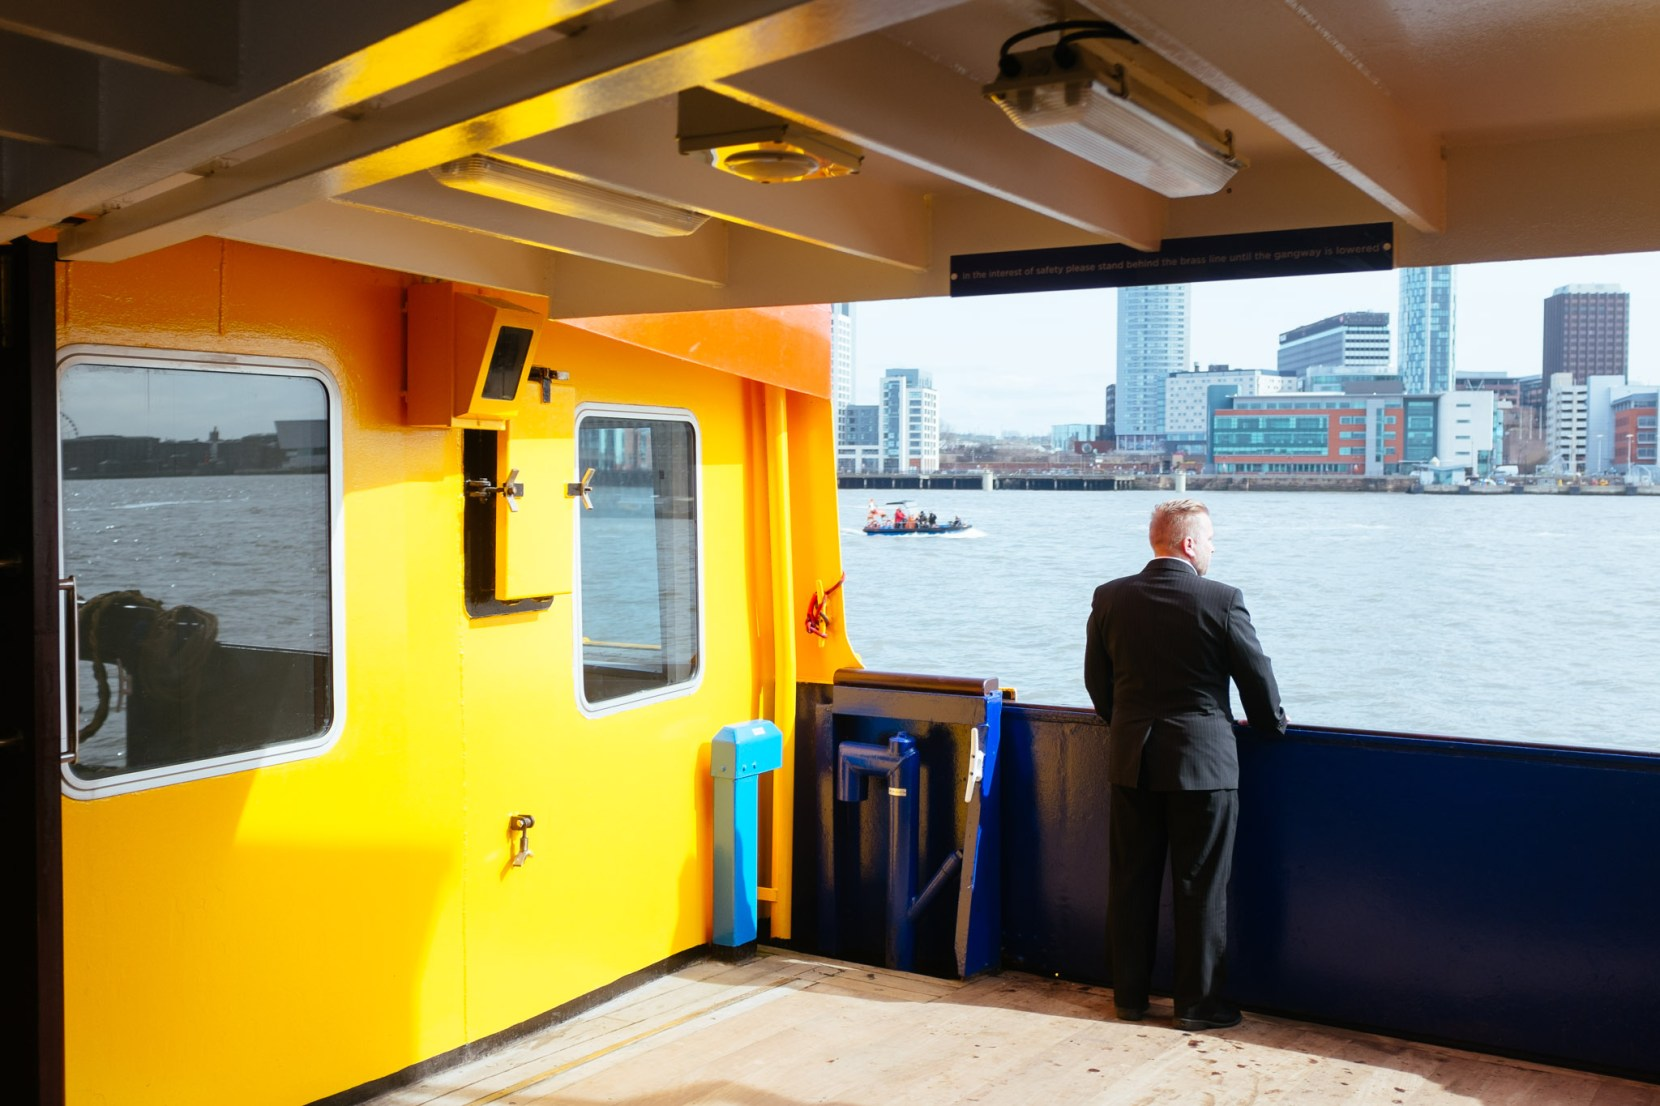 dazzle-ferry-liverpool-6330